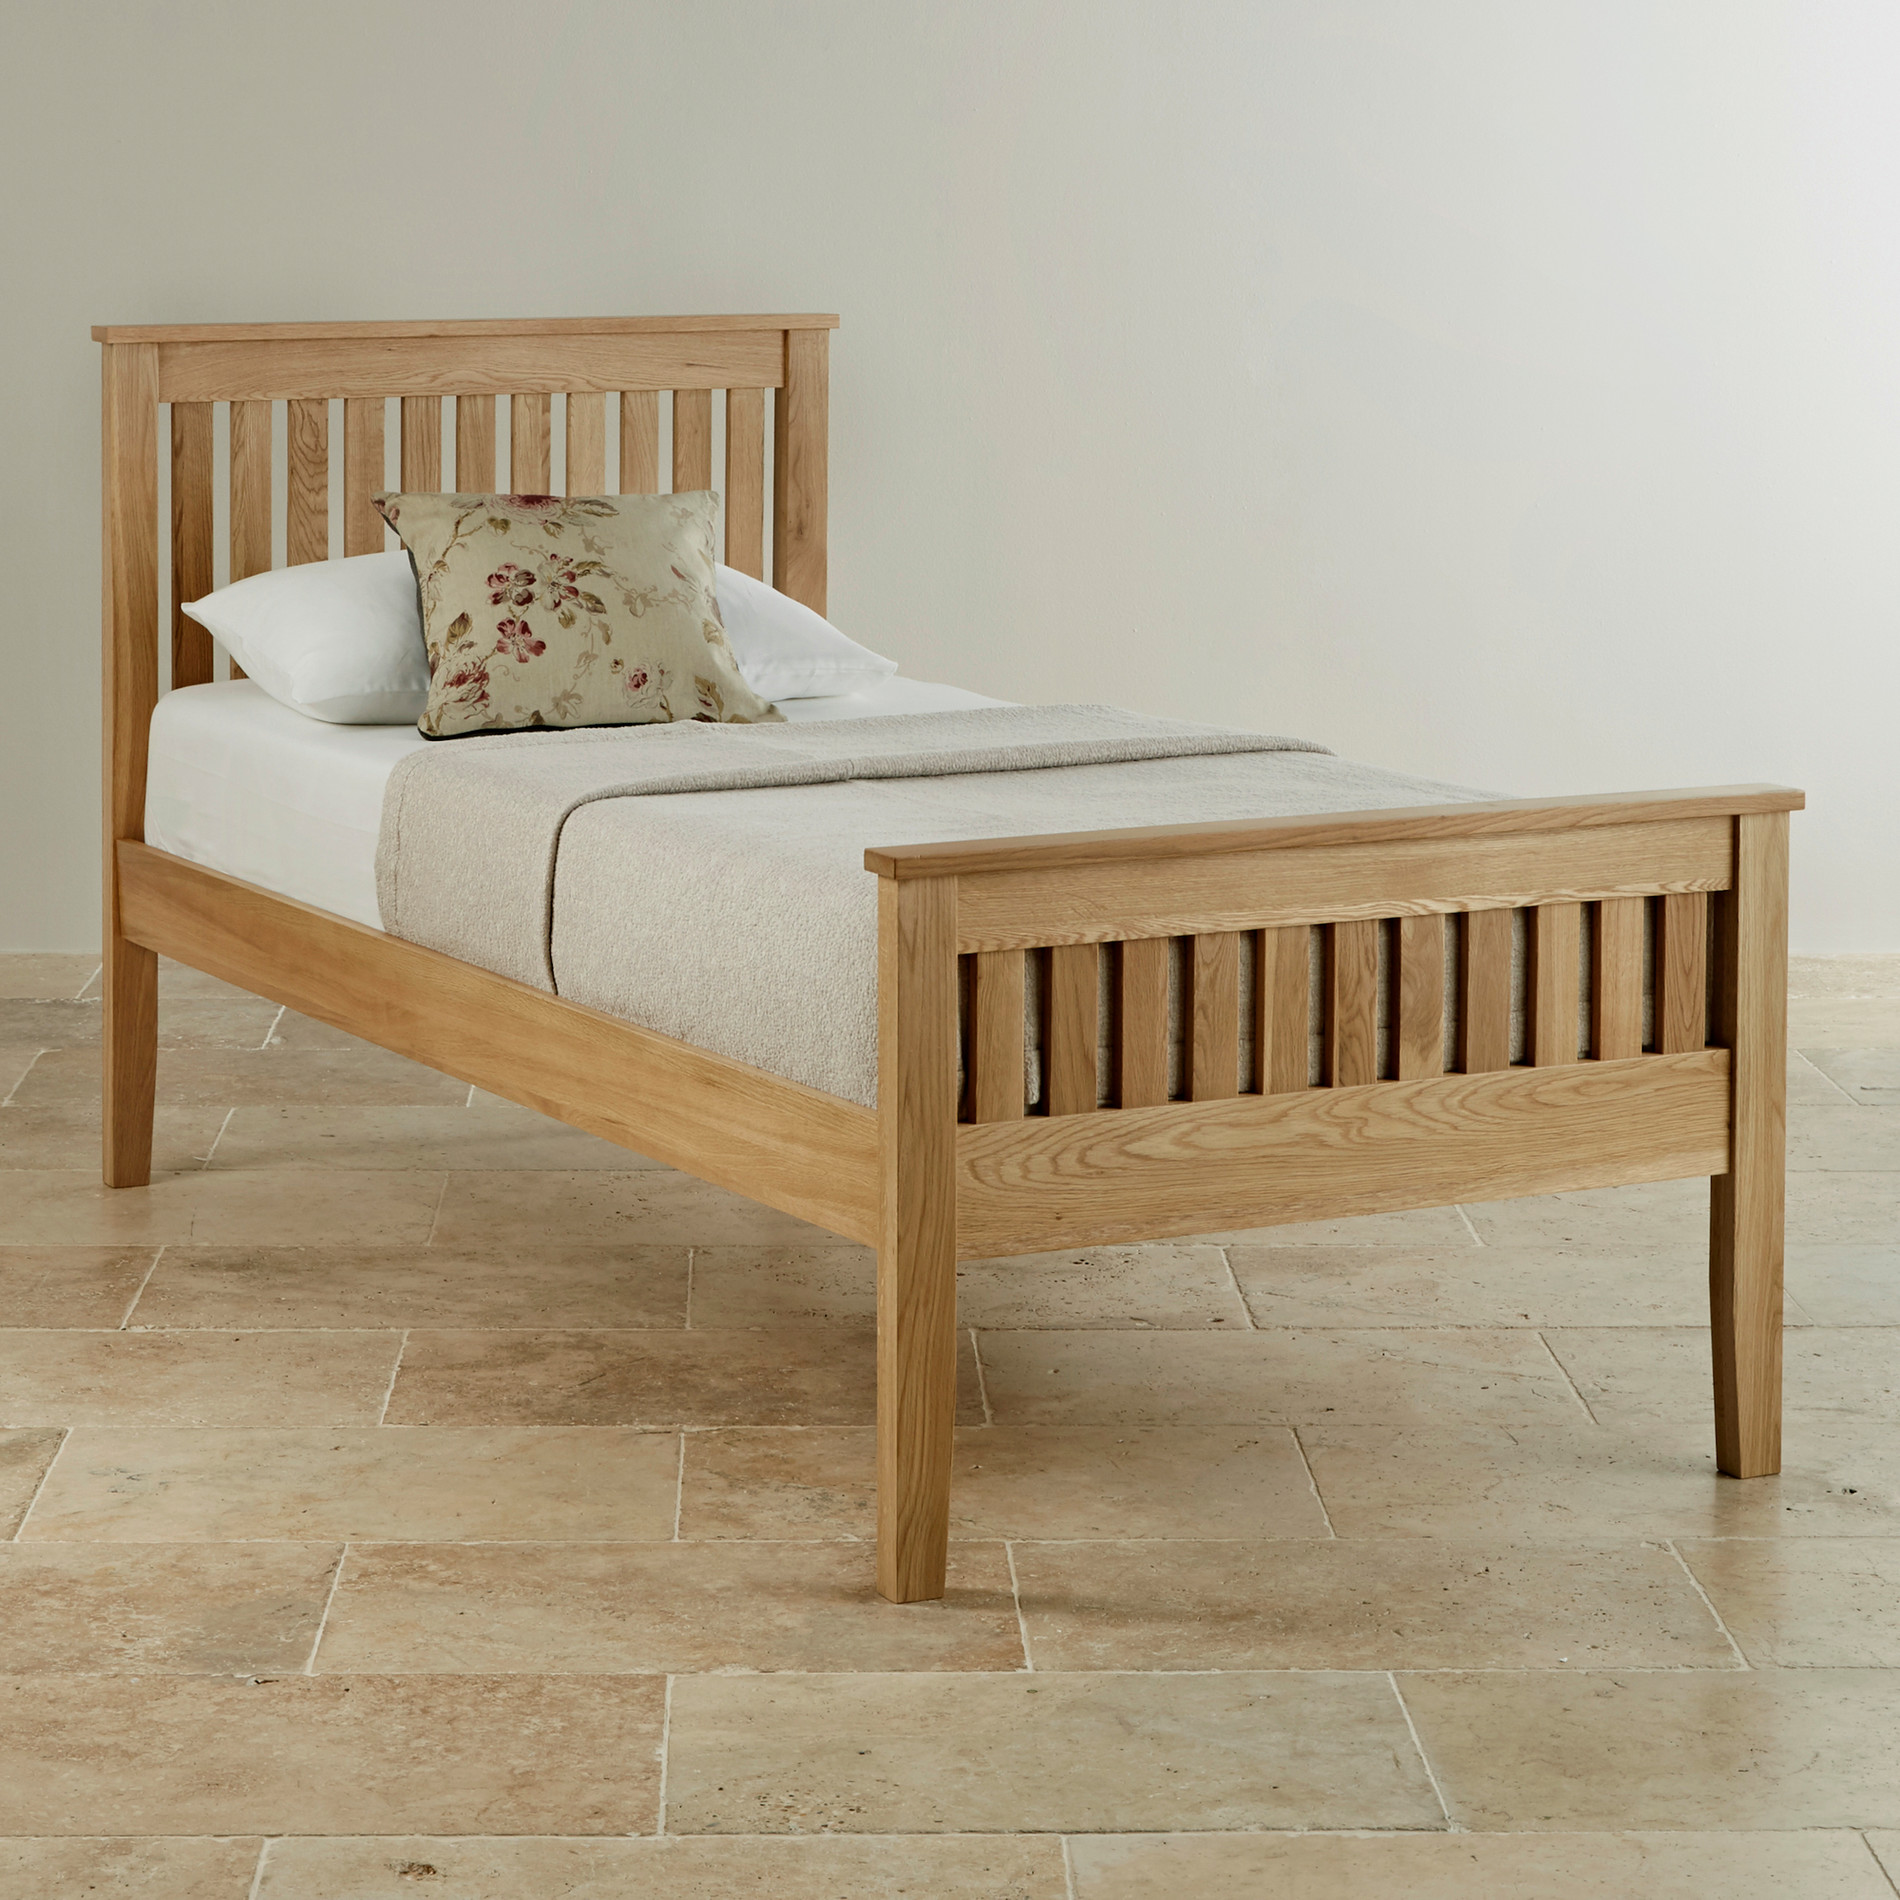 cairo natural solid oak single bed bedroom furniture. Black Bedroom Furniture Sets. Home Design Ideas